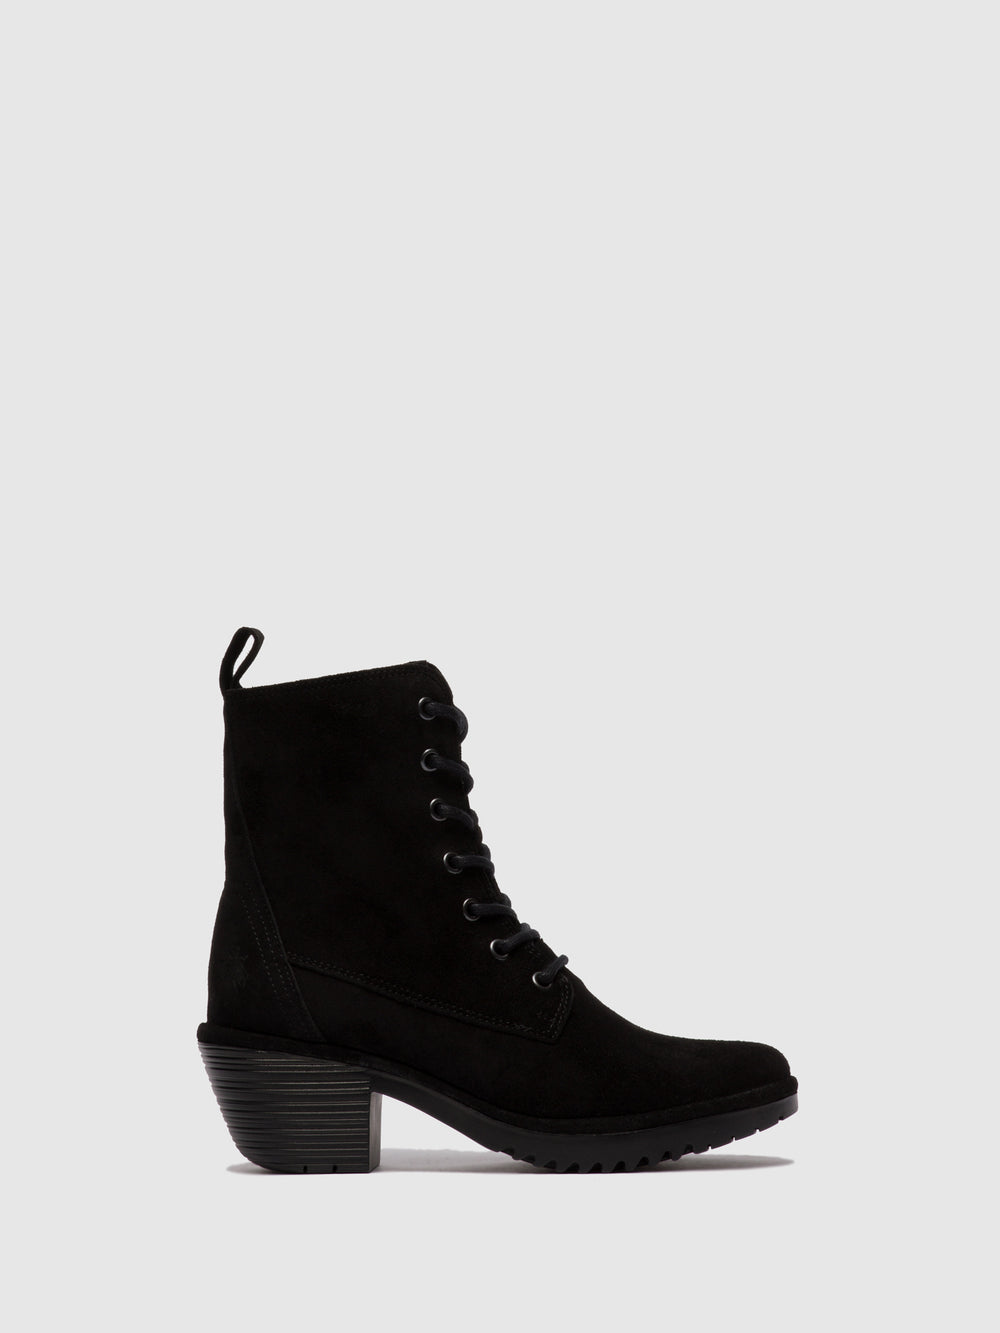 Lace-up Ankle Boots WEBE244FLY OILSUEDE BLACK